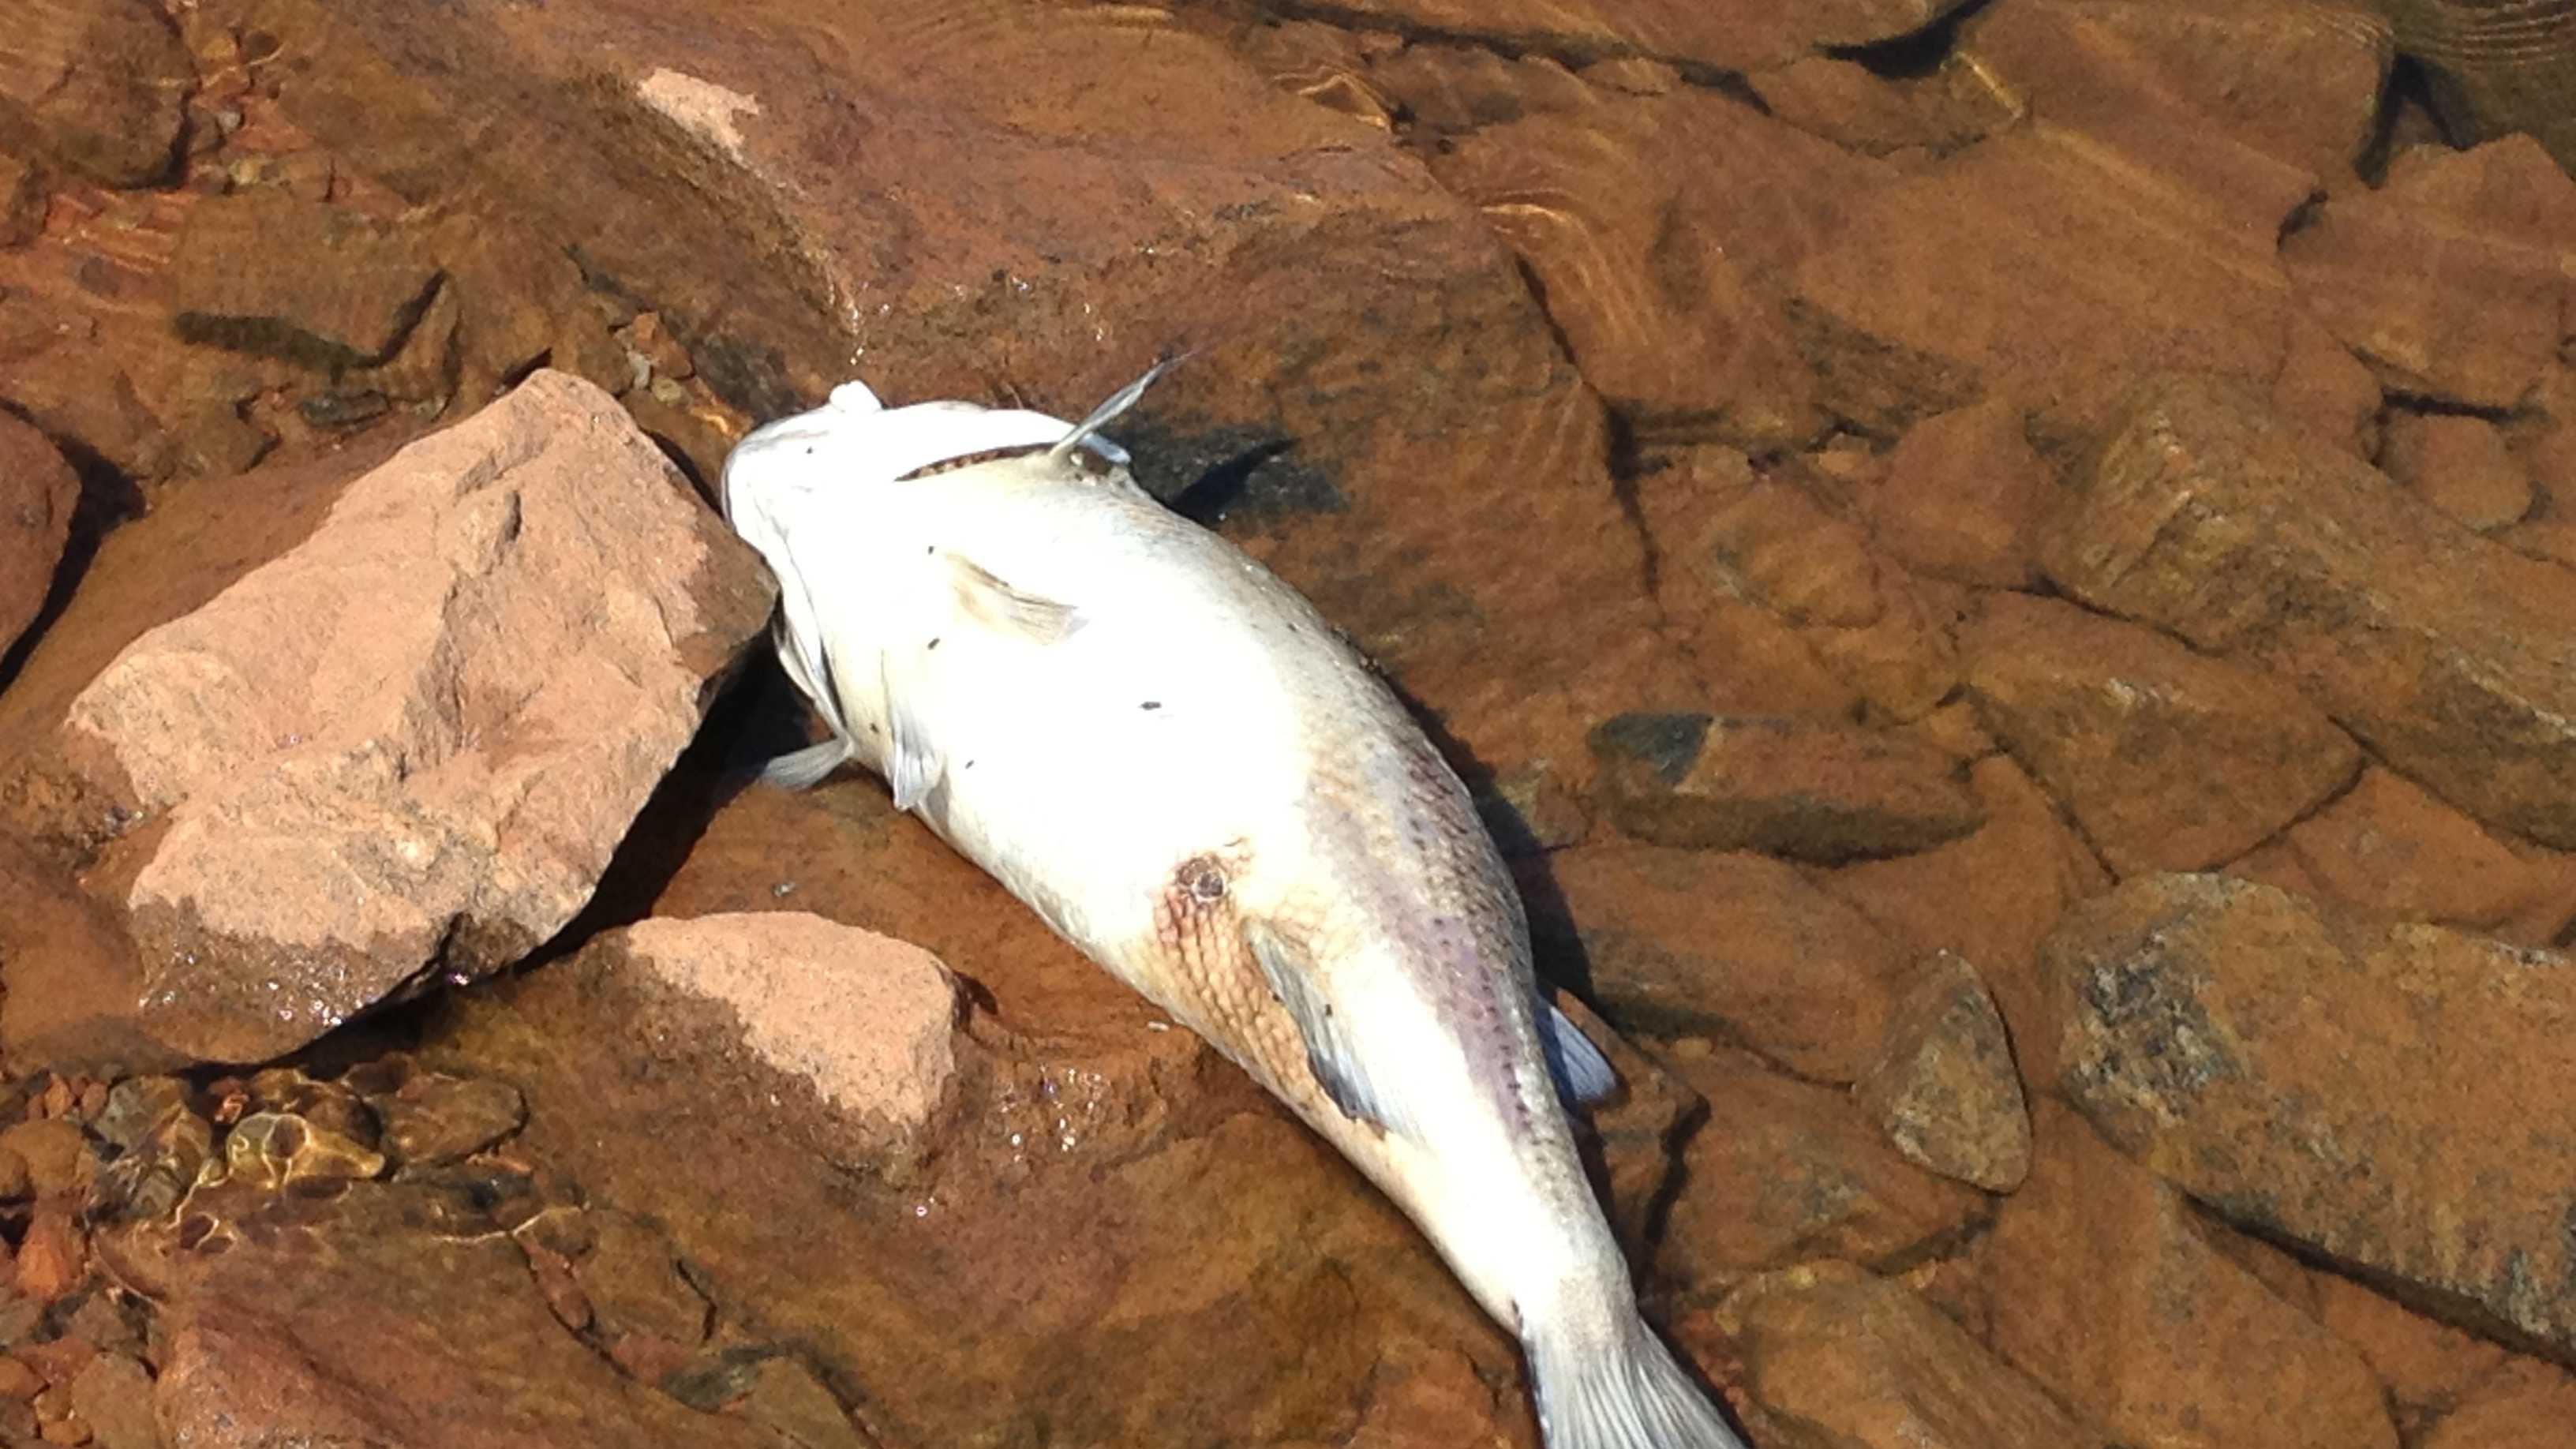 Dead fish (striped bass)